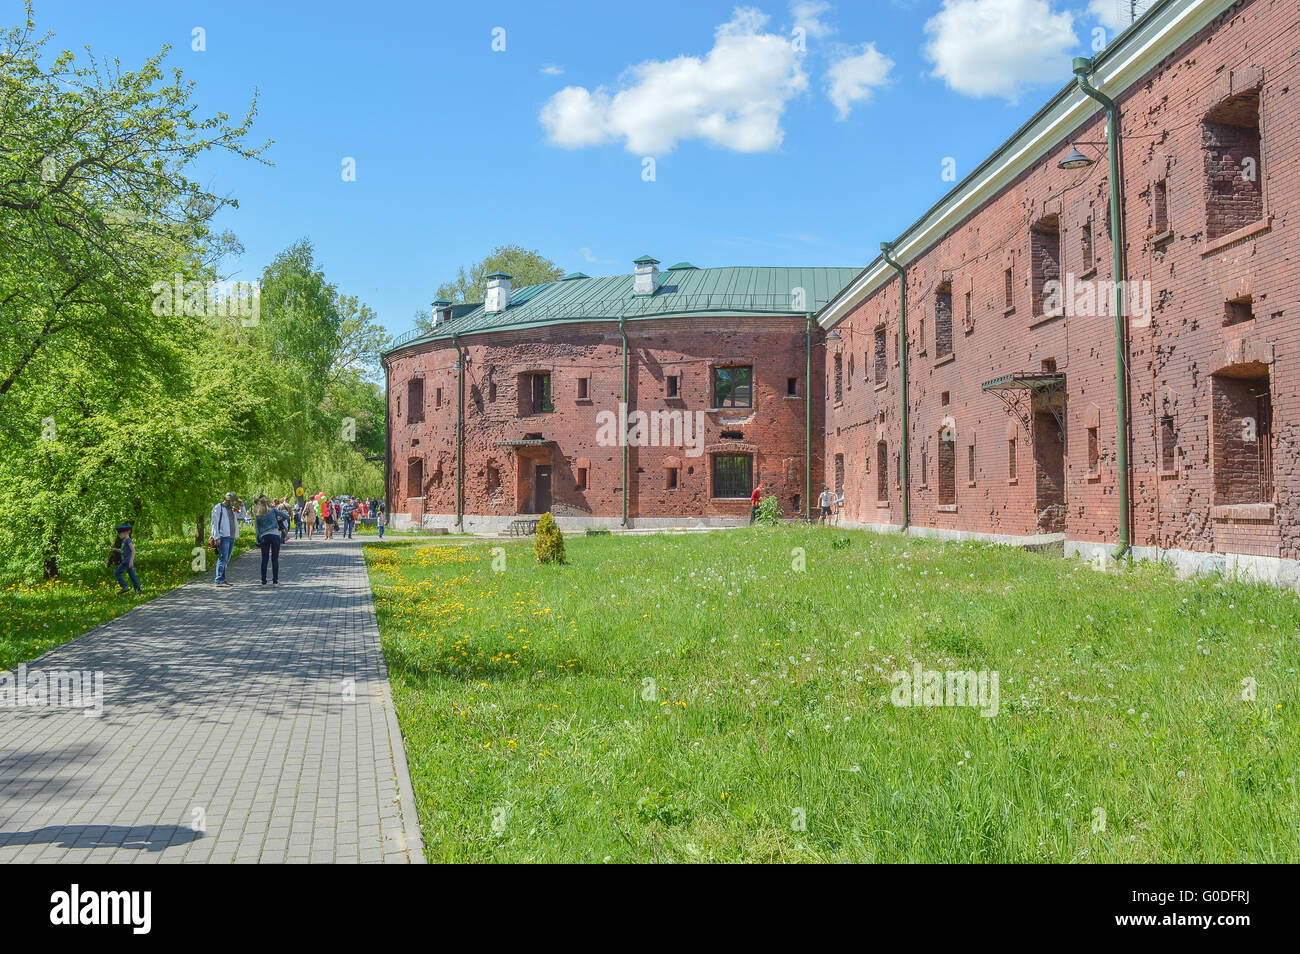 Brest, Belarus - May 9, 2015: Brest Fortress, Brest, Belarus. It is one of the Soviet World War II war monuments - Stock Image